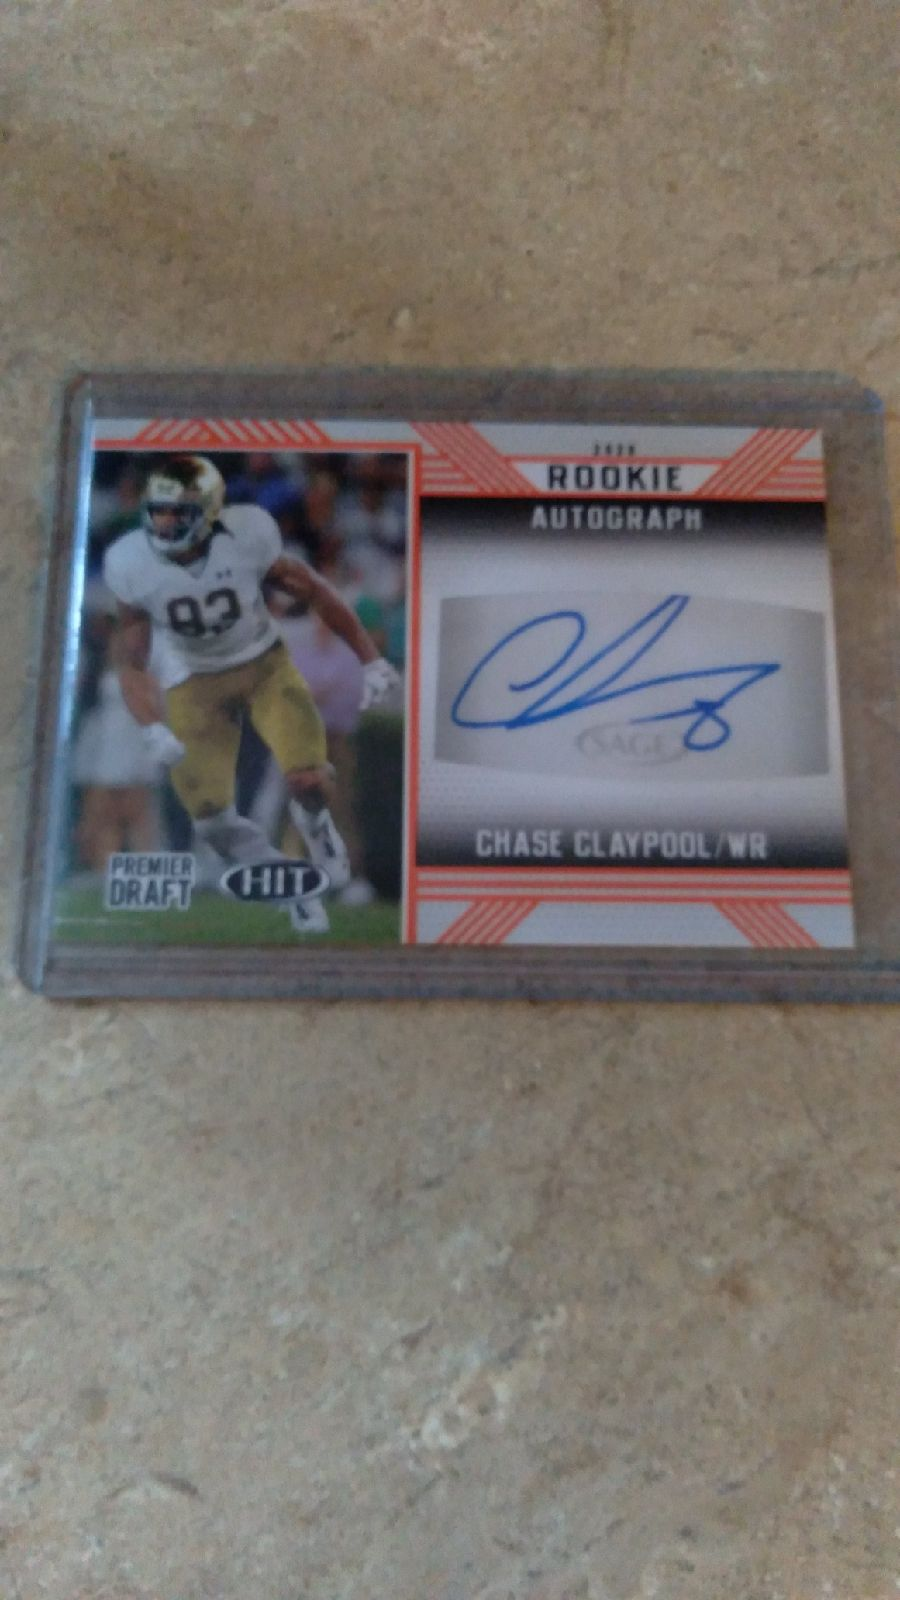 Chase claypool autograph Hit rc